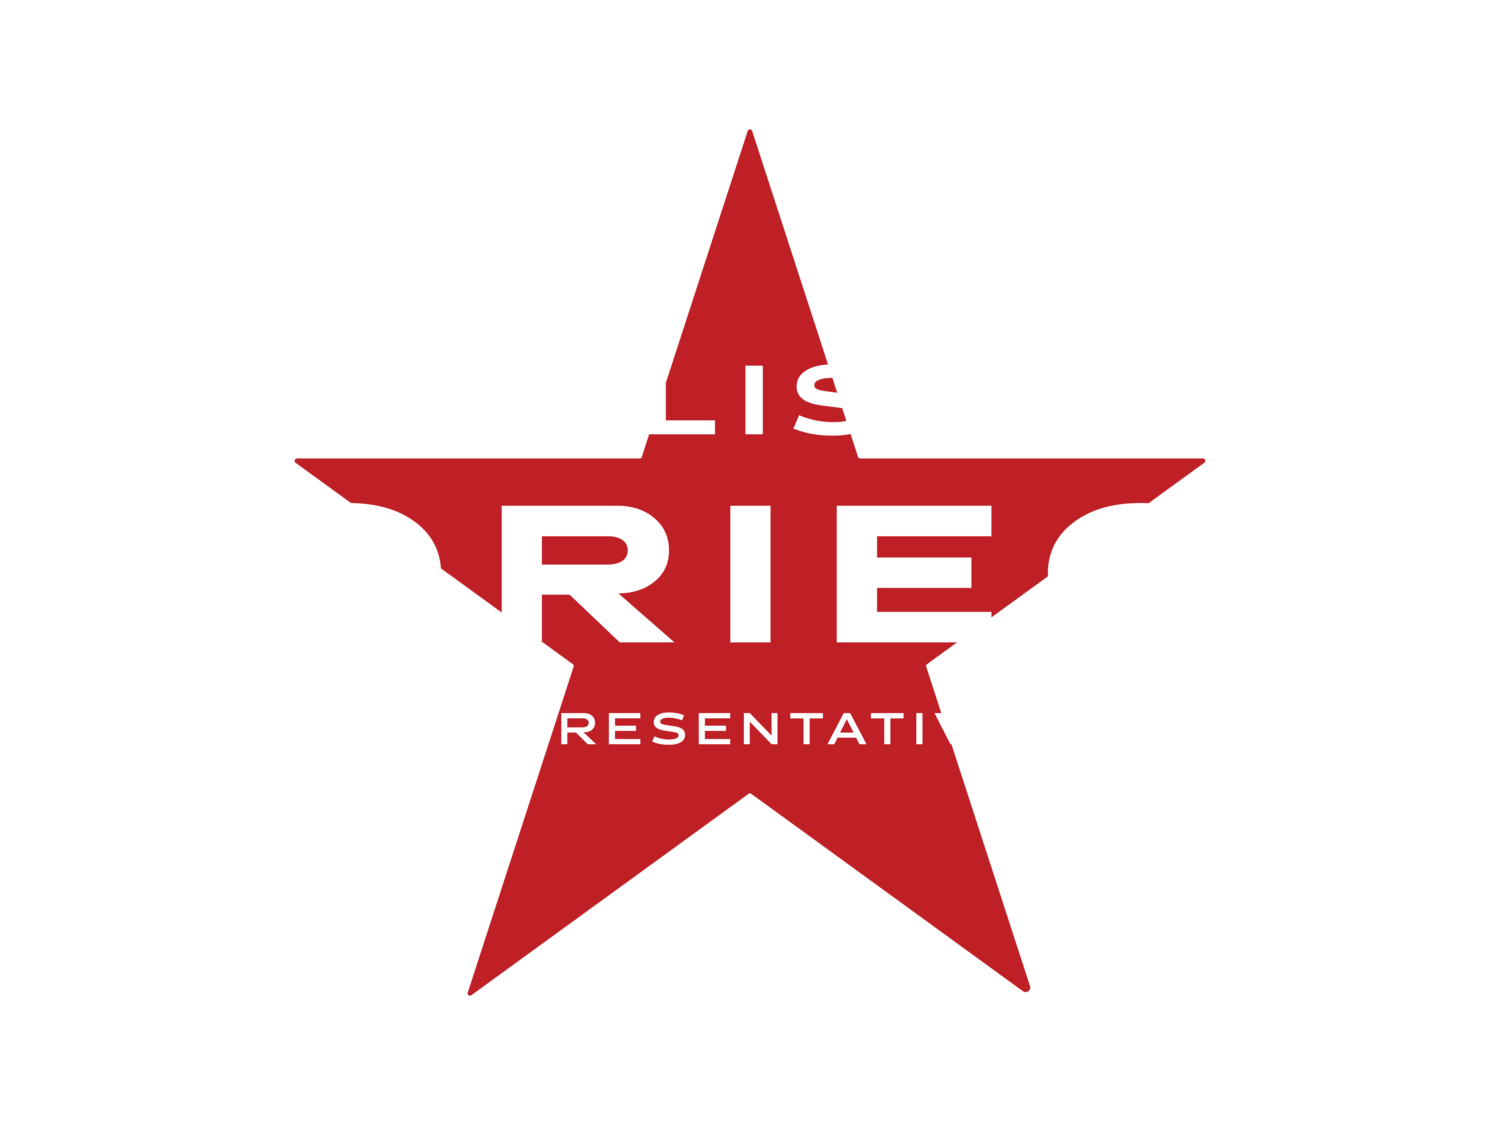 Melissa Noriega for Texas State Representative District 145